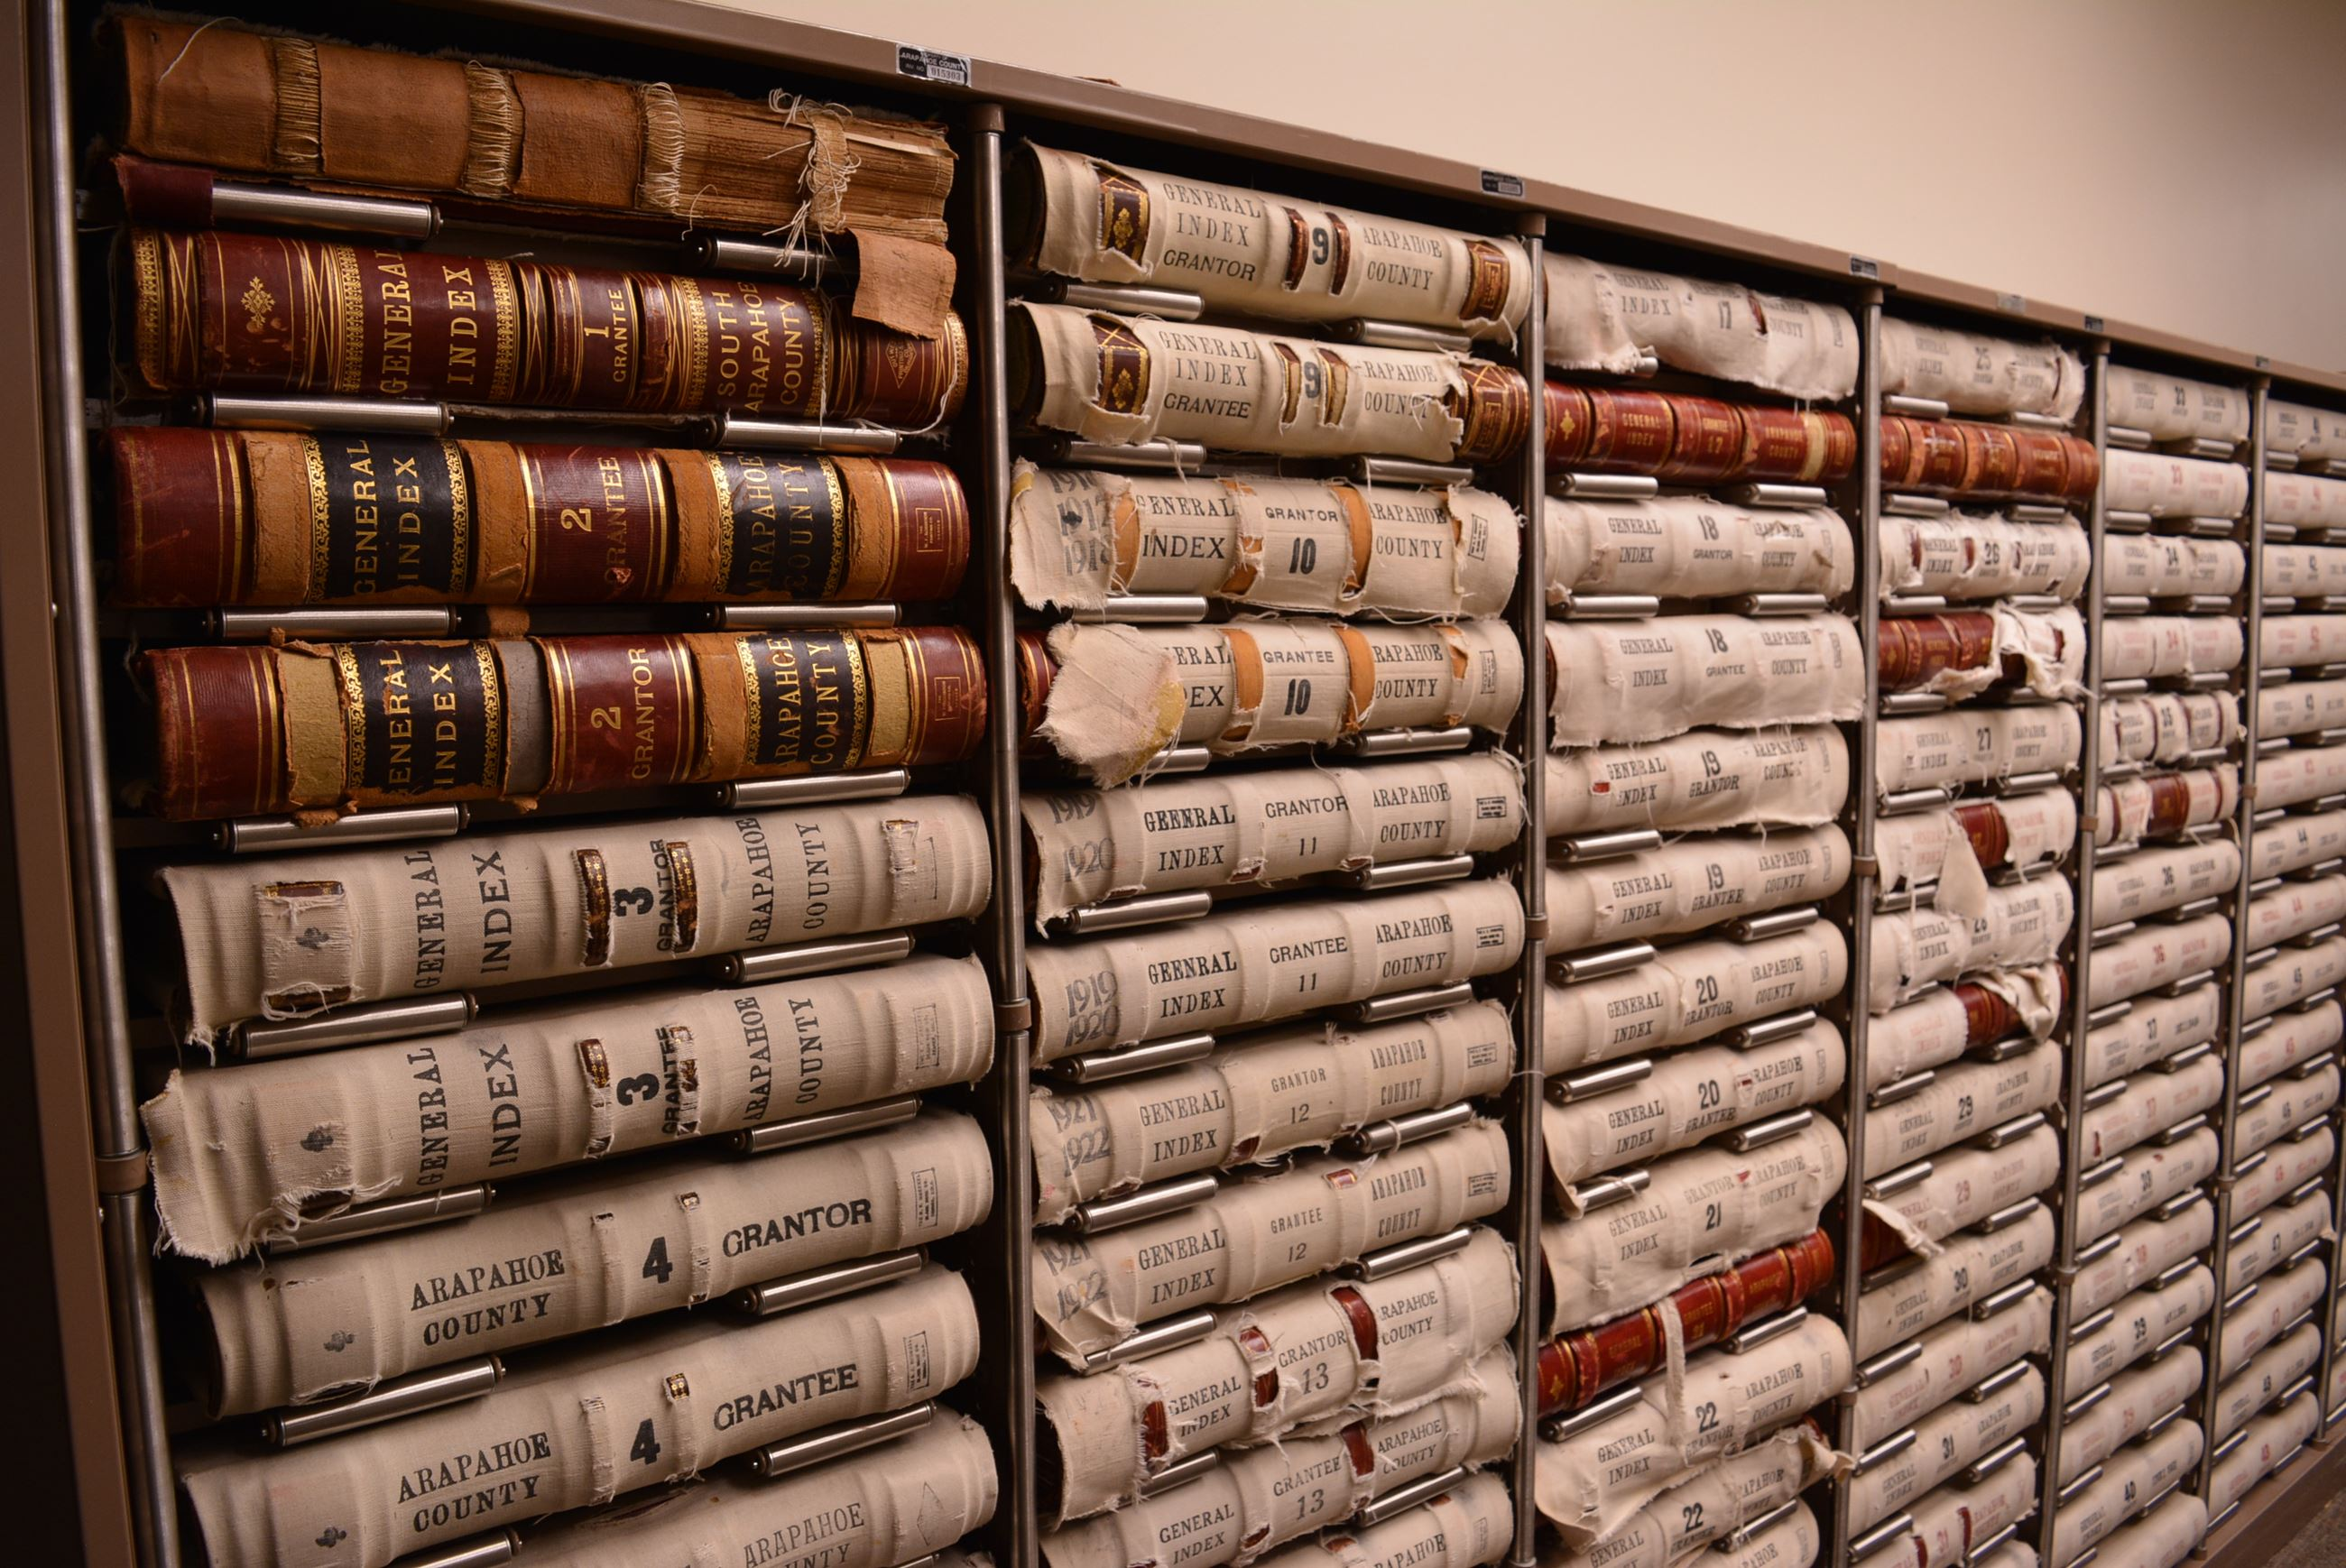 Shelves of Historical Record Books from the 1900s